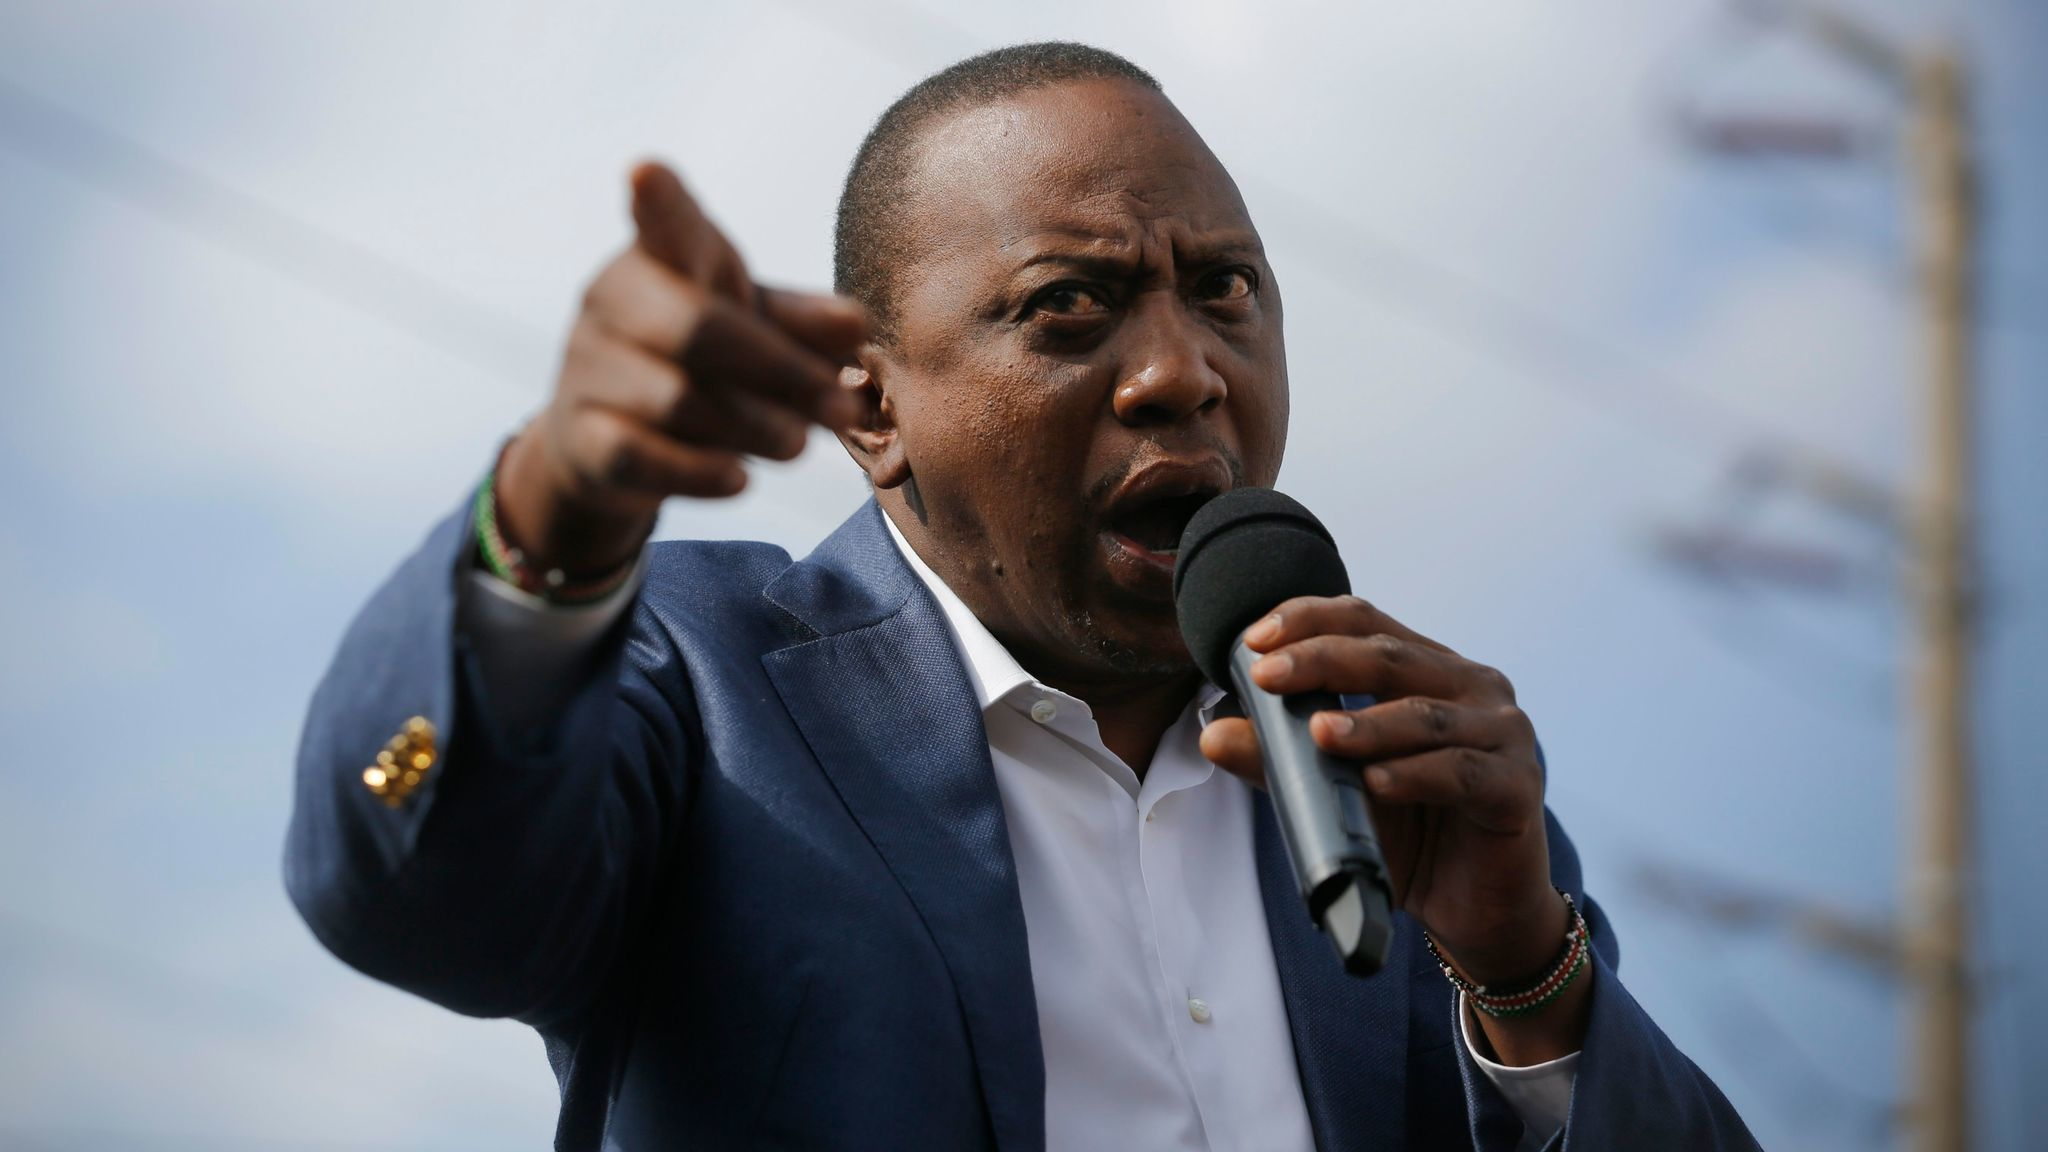 """Kenyan President Uhuru Kenyatta attends a campaign rally outside Nairobi on Sept. 5. Kenyatta threatened to """"fix"""" the judiciary after the Supreme Court invalidated the Aug. 8 presidential election."""